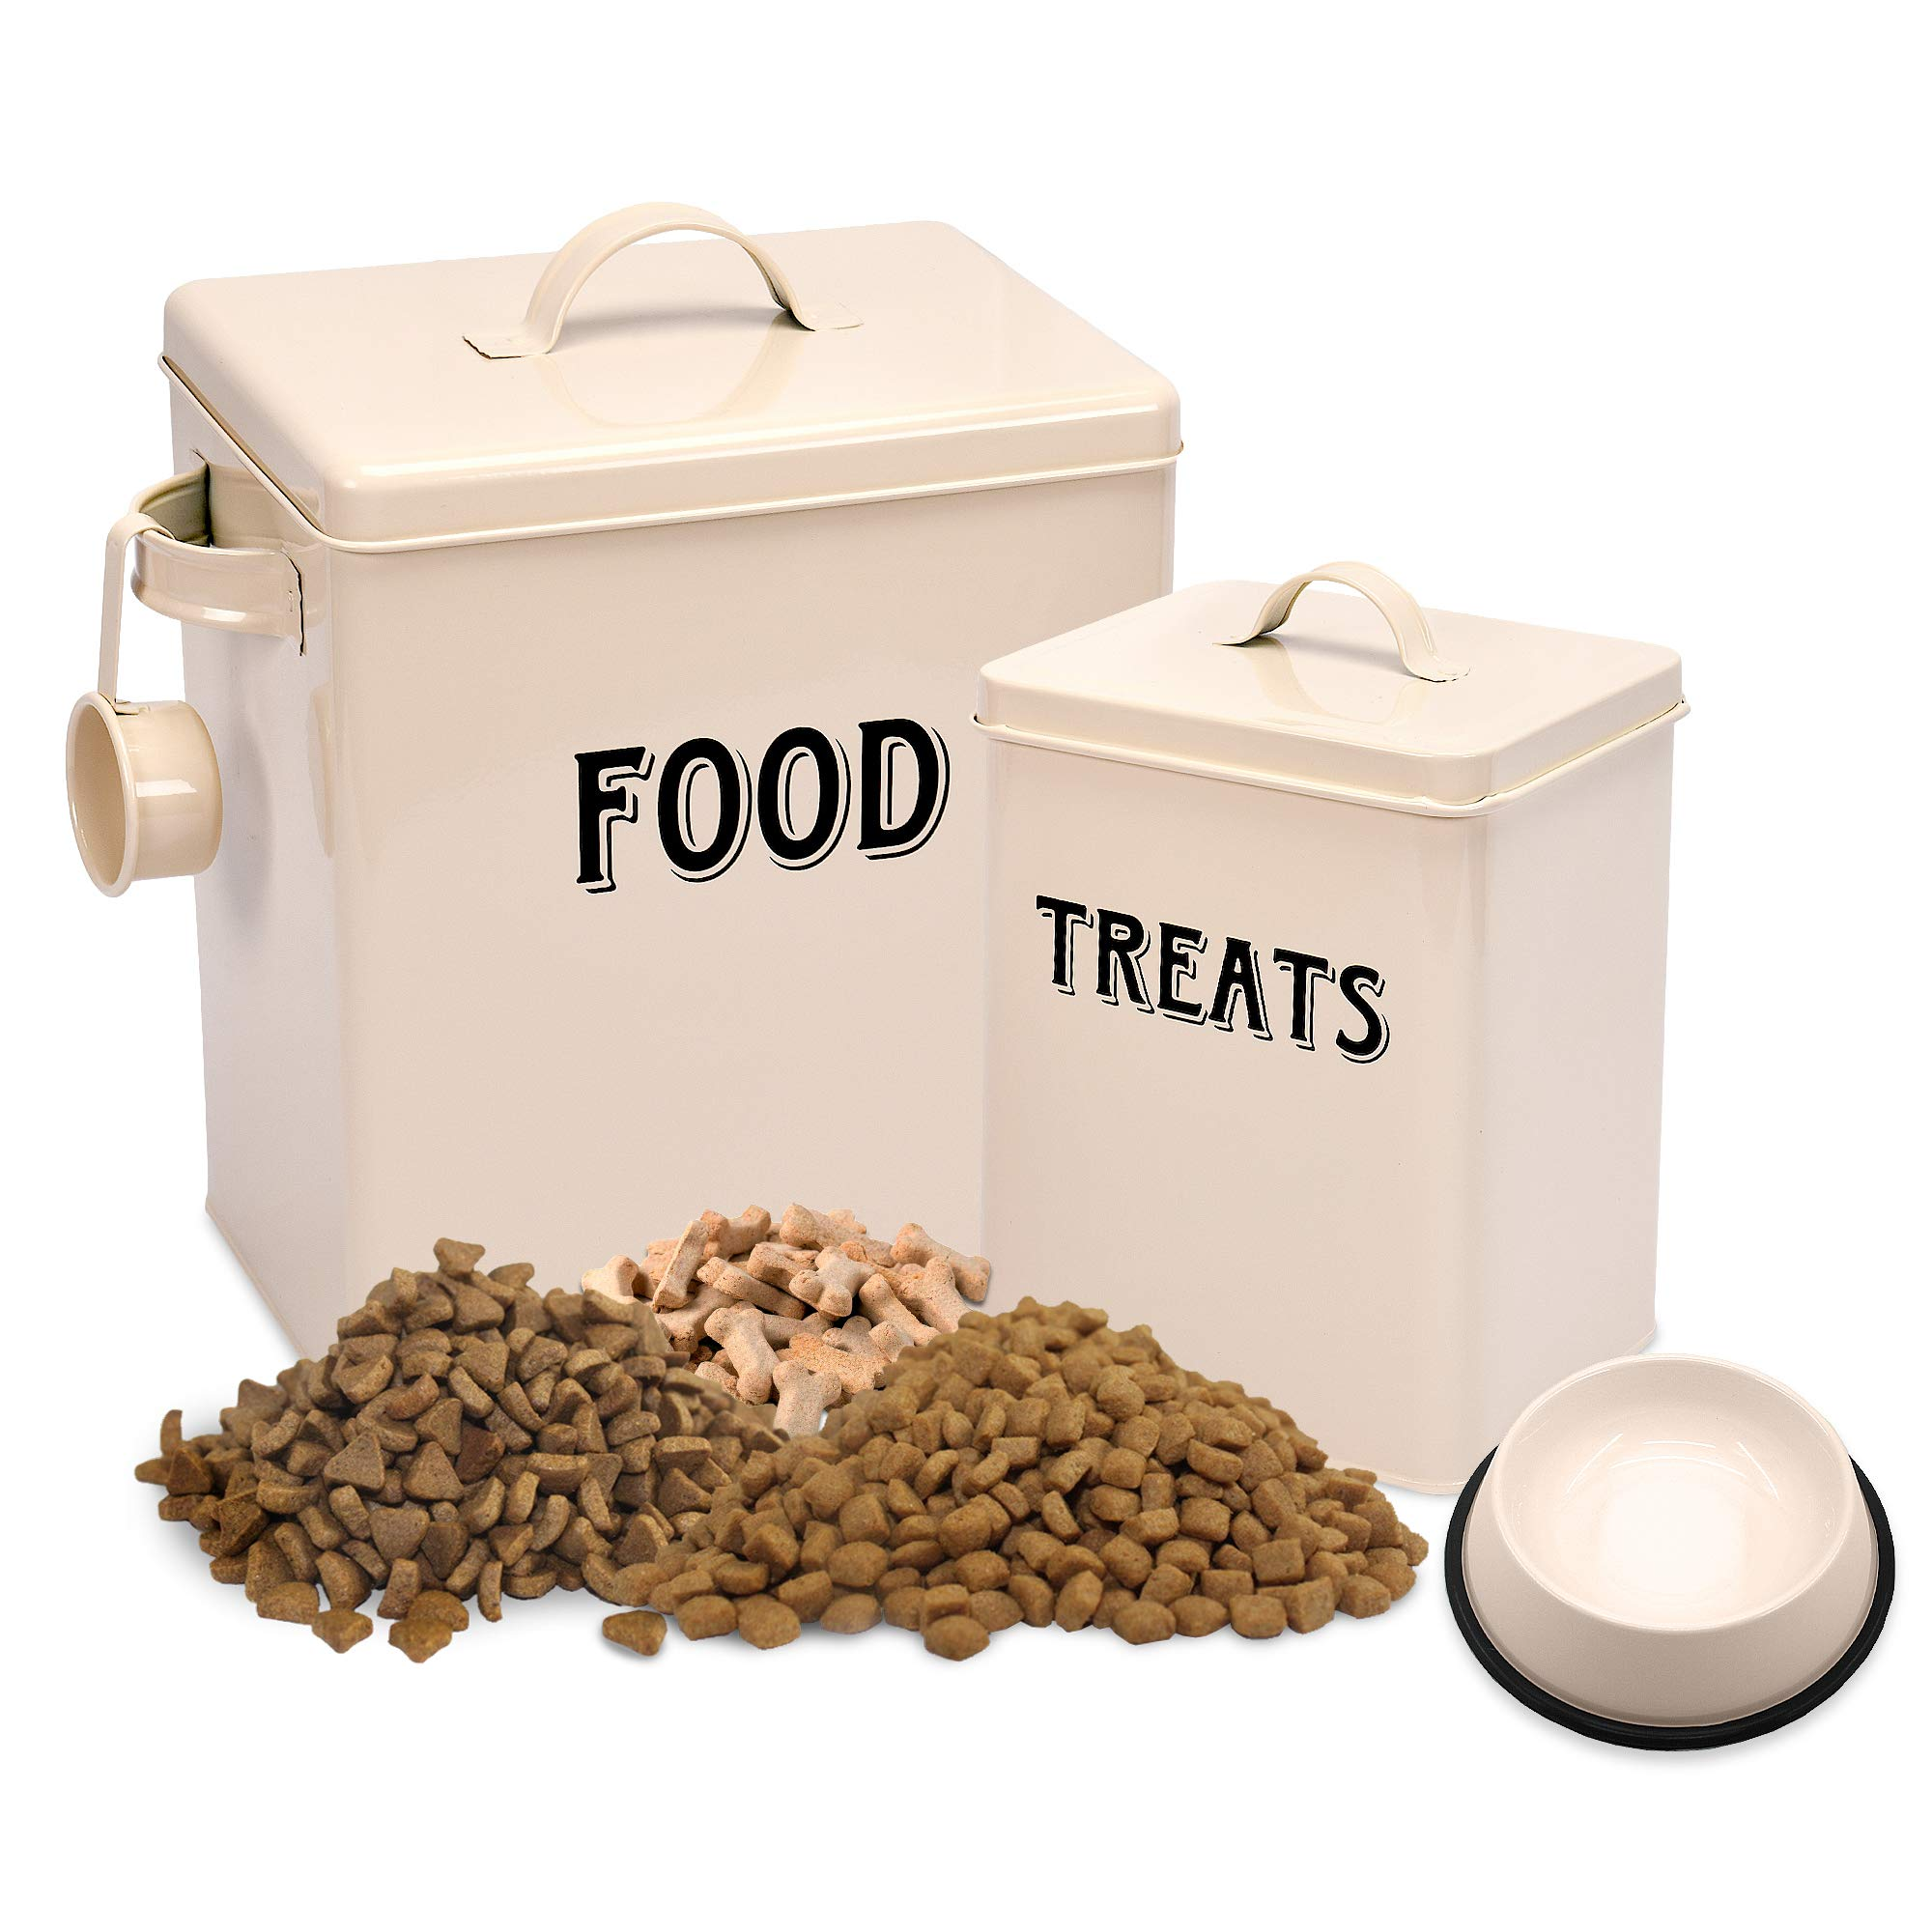 Silky Road Pet Food and Treats Containers Set with Scoop and Bowl for Cats or Dogs Vintage Cream Powder-Coated Carbon Steel - Air-Tight Fitting Lid - Storage Canister Tins